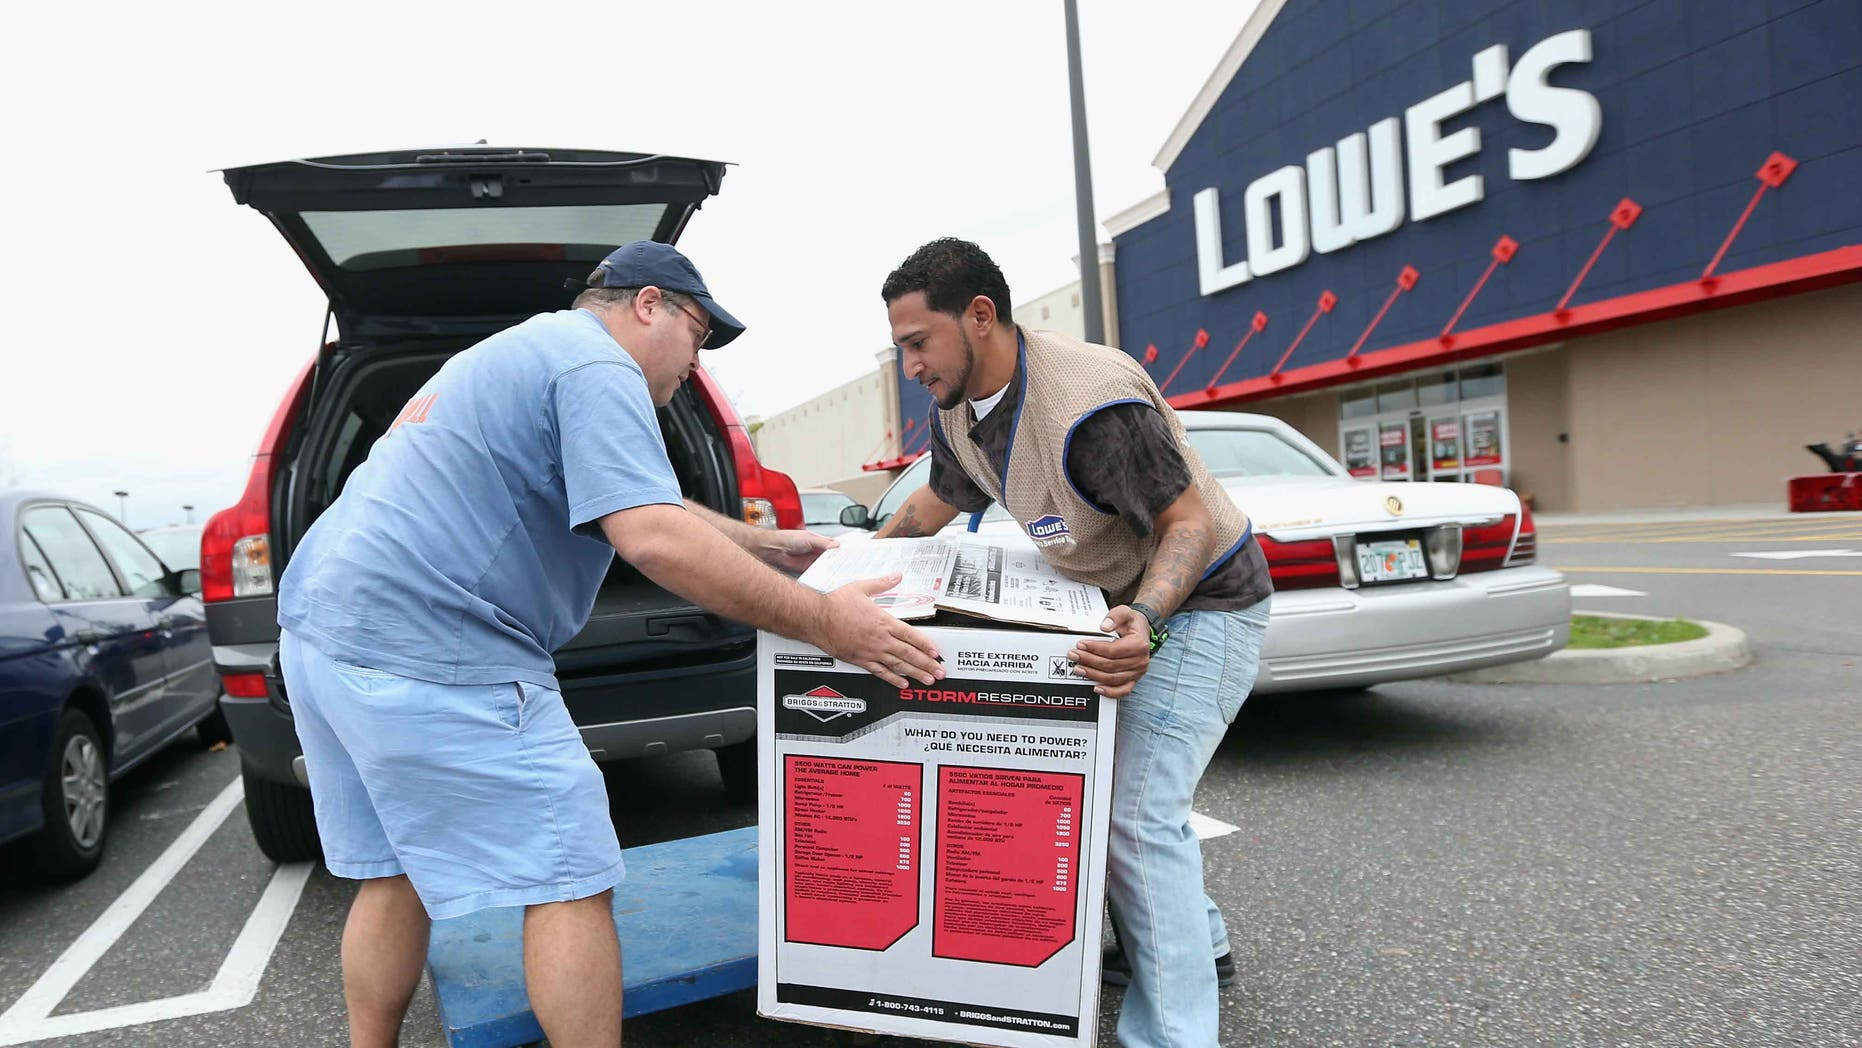 HICKSVILLE, NY - OCTOBER 28:  Joseph Klein of Sayville, New York is assisted by Lowe's employee Ormani Rivera after his purchase of a generator as Hurrican Sandy approaches on October 28, 2012 in Hicksville, New York. Sandy, which has already claimed over 50 lives in the Caribbean is predicted to bring heavy winds and floodwaters to the mid-atlantic region.  (Photo by Bruce Bennett/Getty Images)